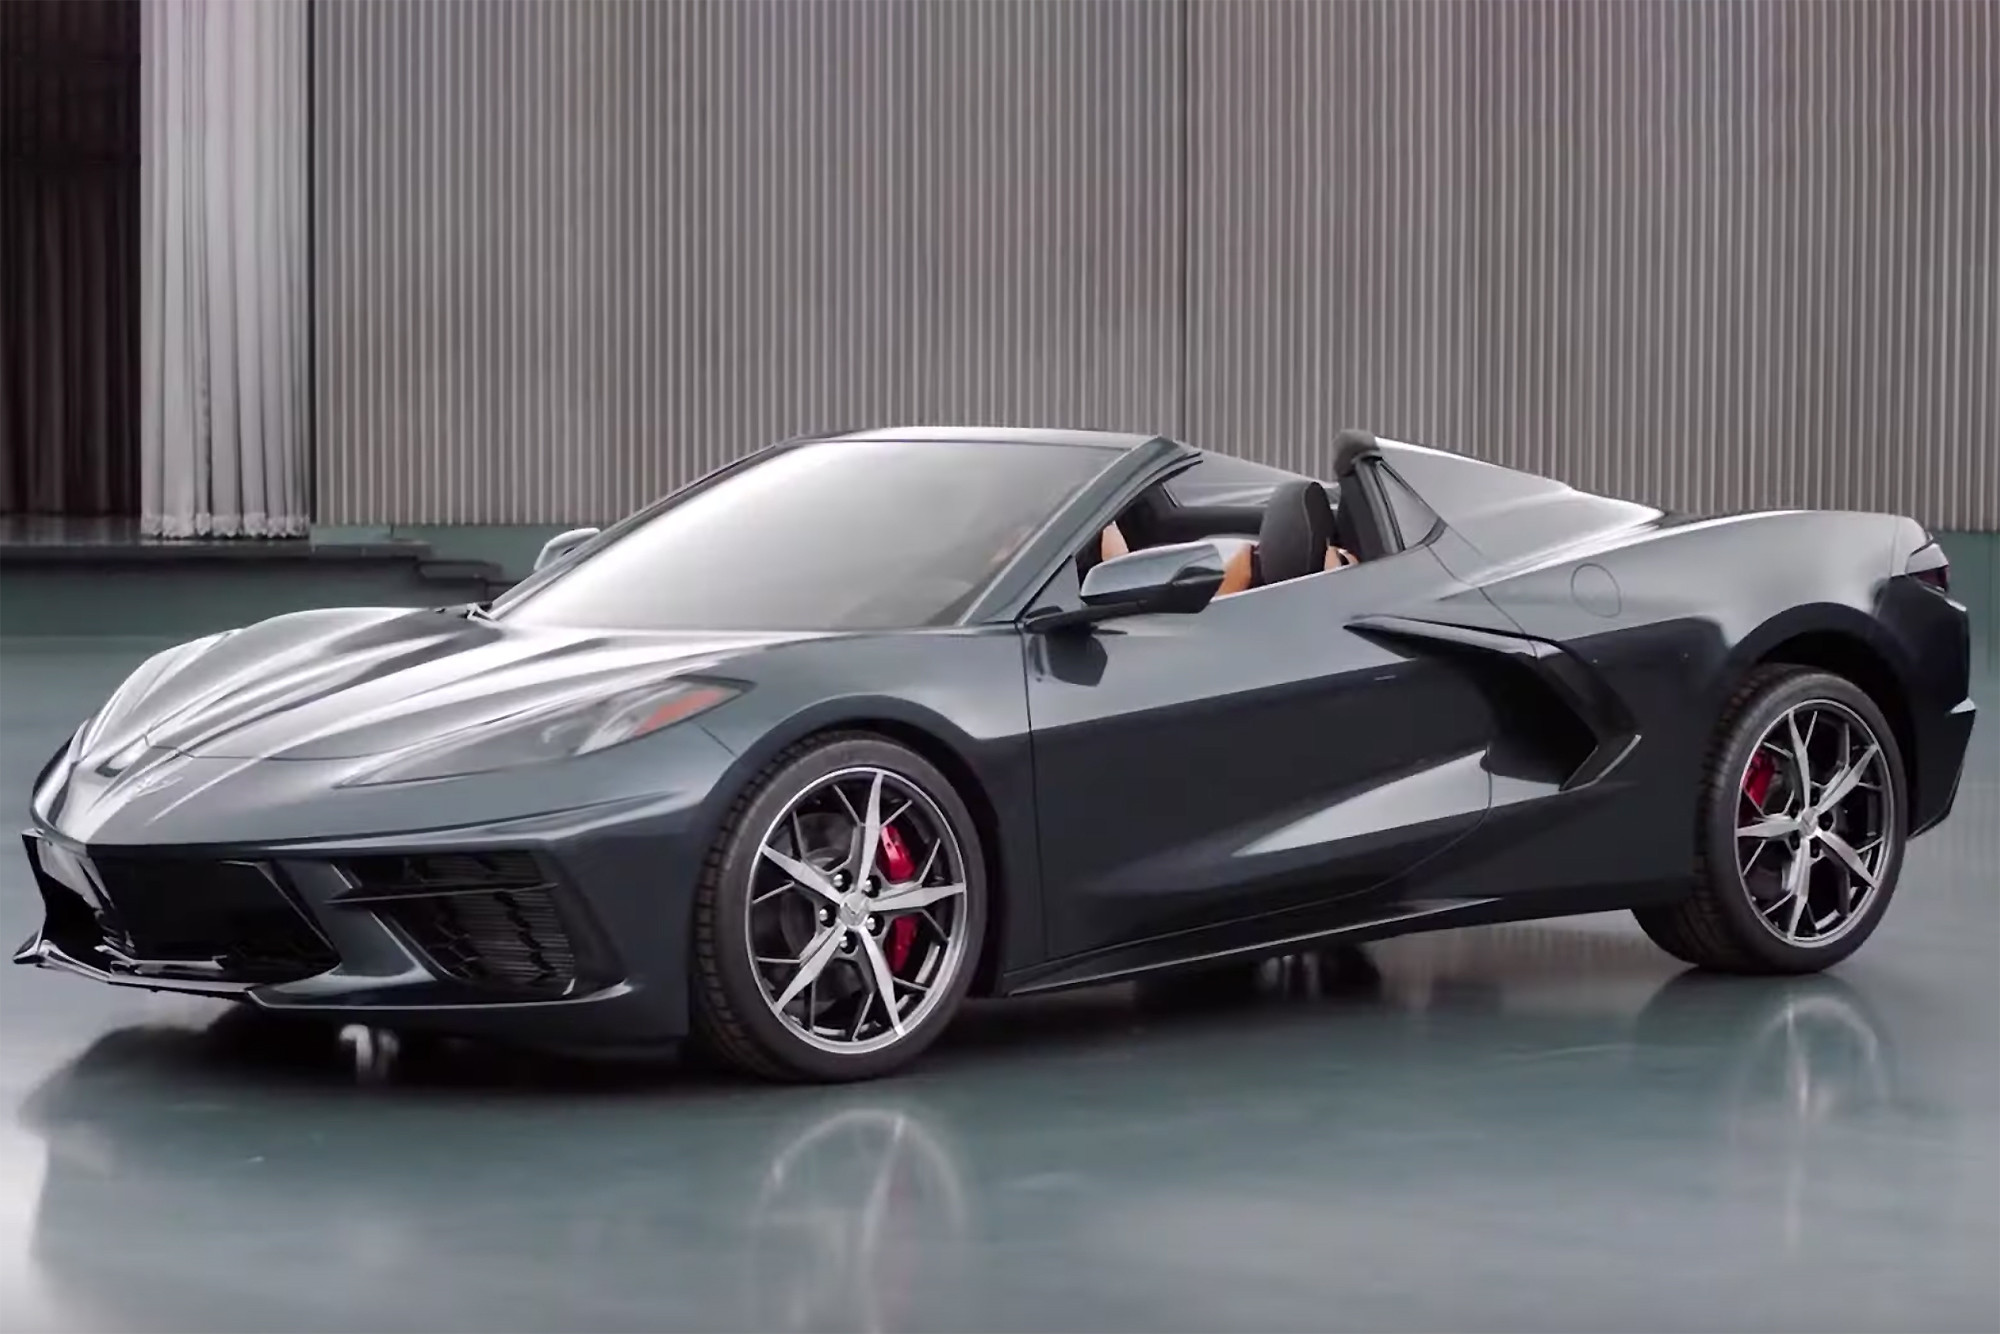 20 Best 2020 Chevrolet Corvette C8 Picture